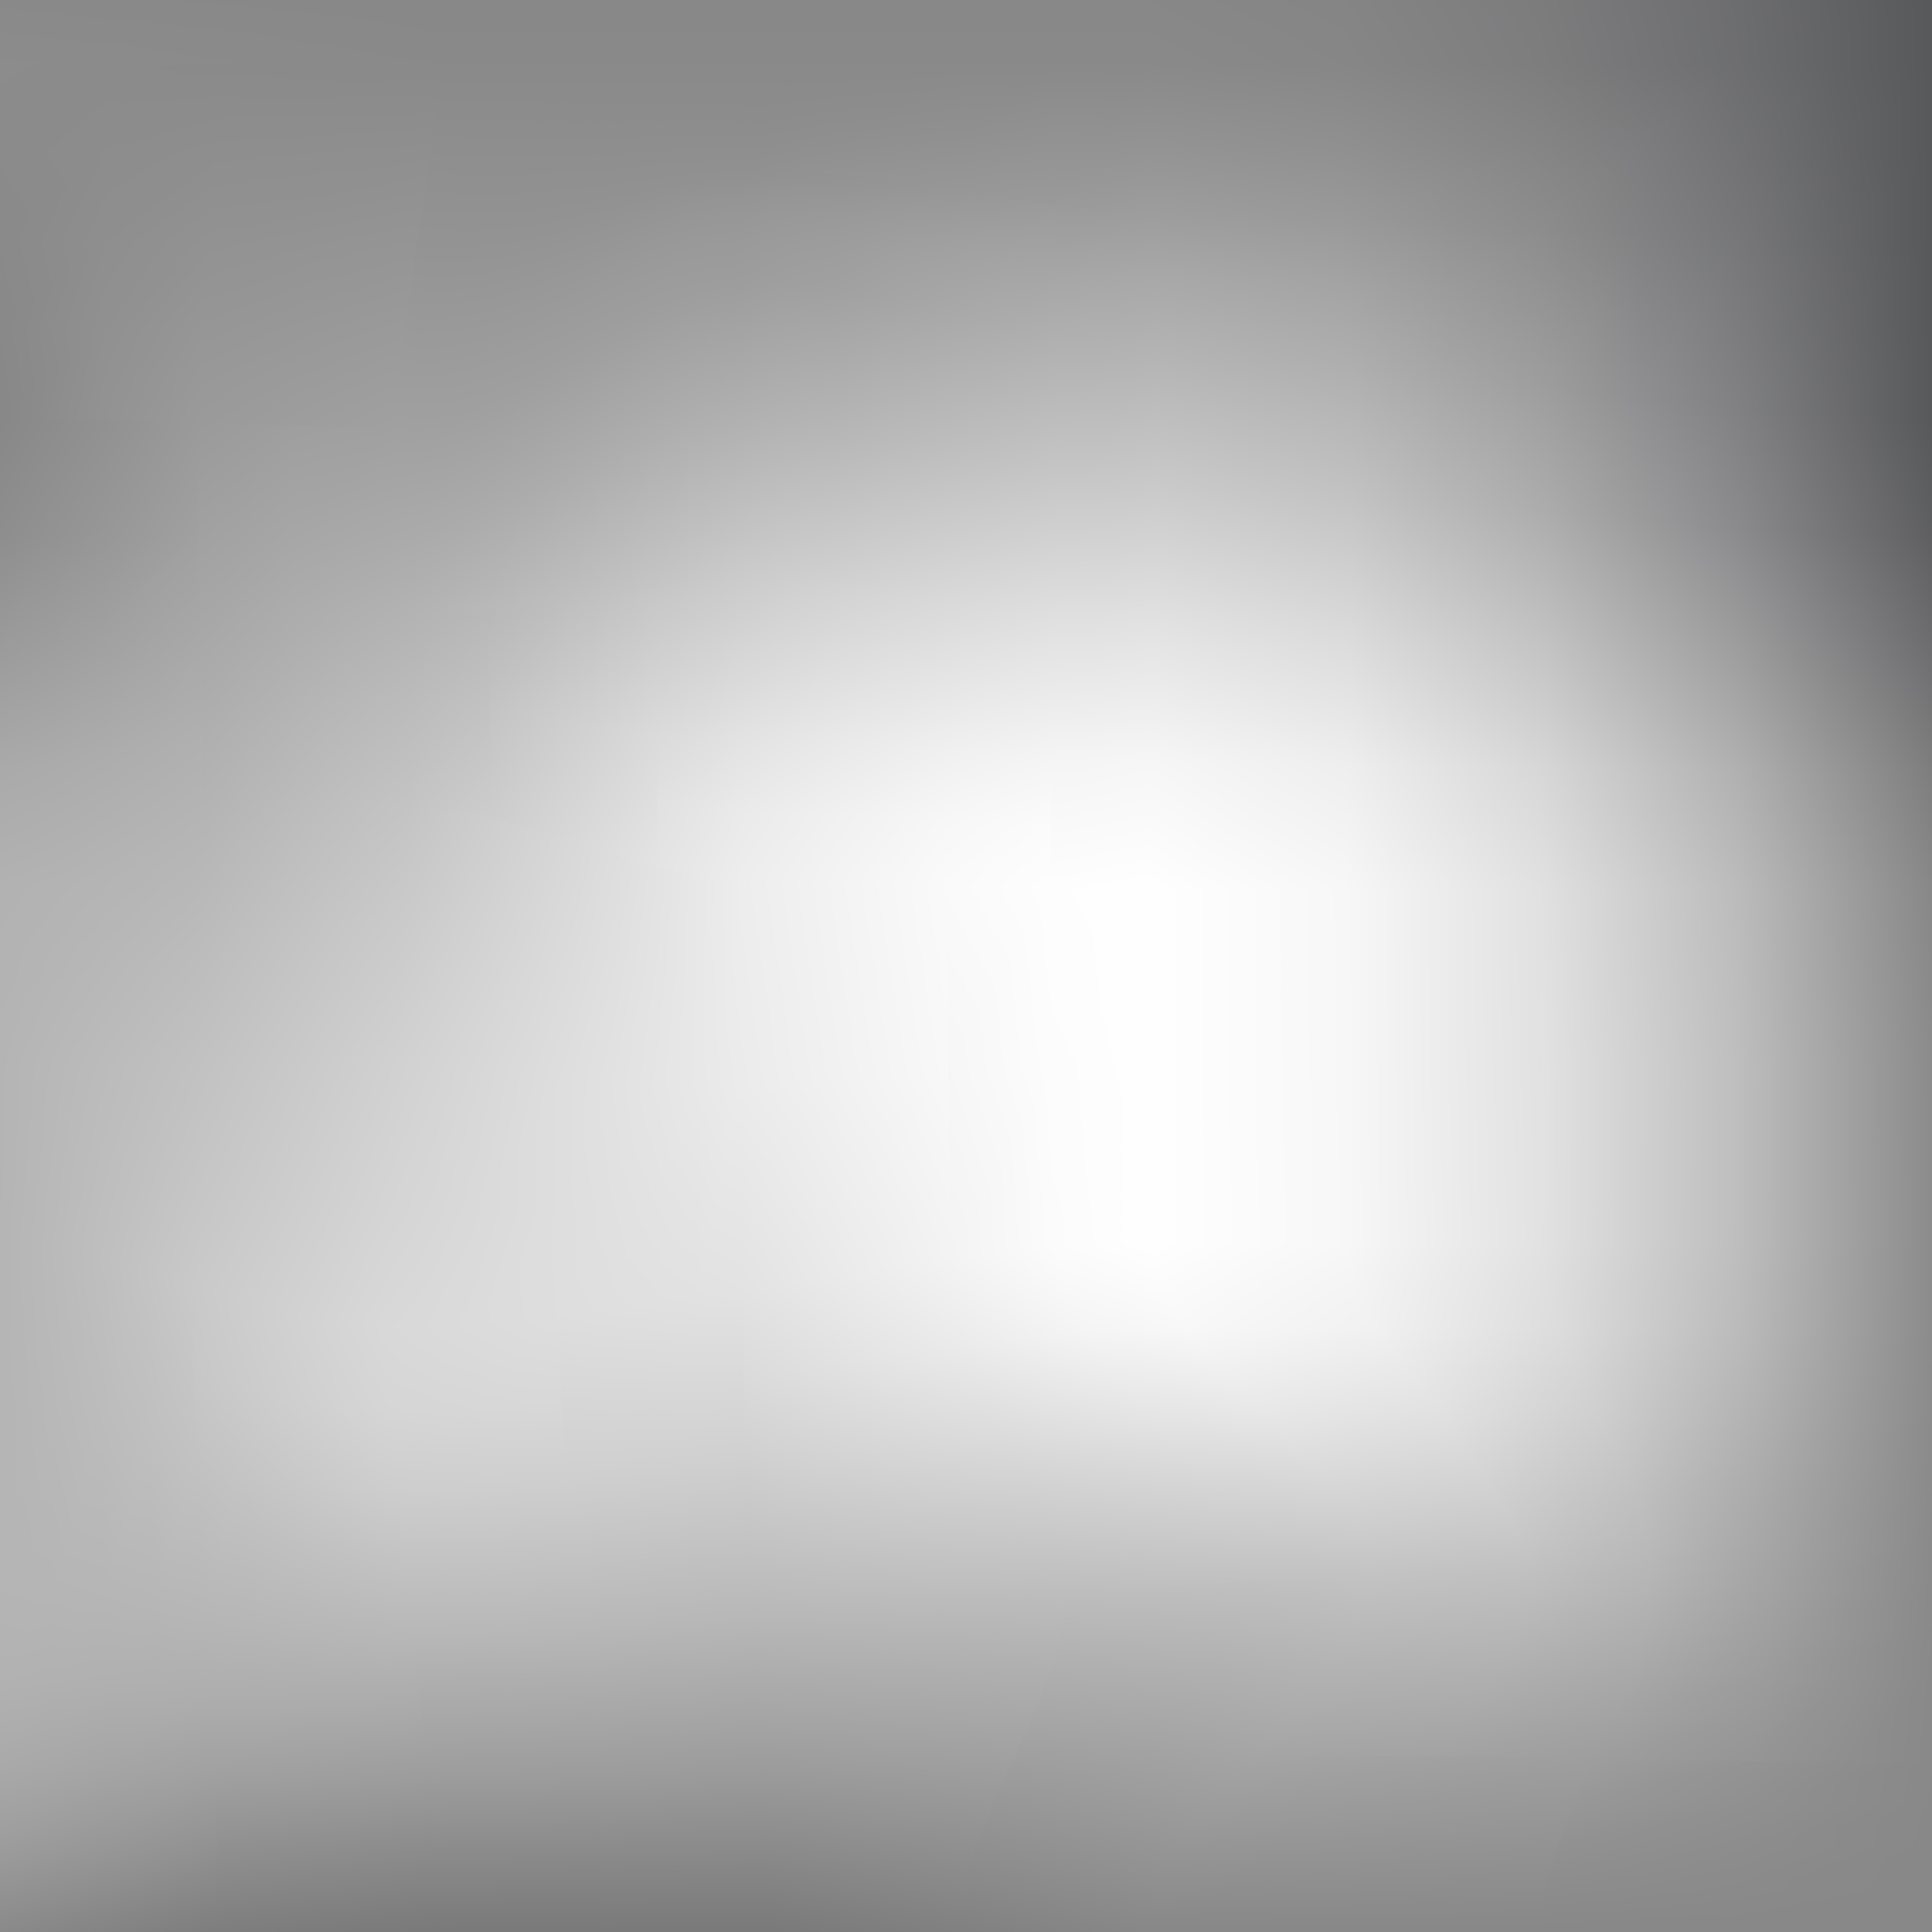 Blurred silver effect holographic gradient background example image 3